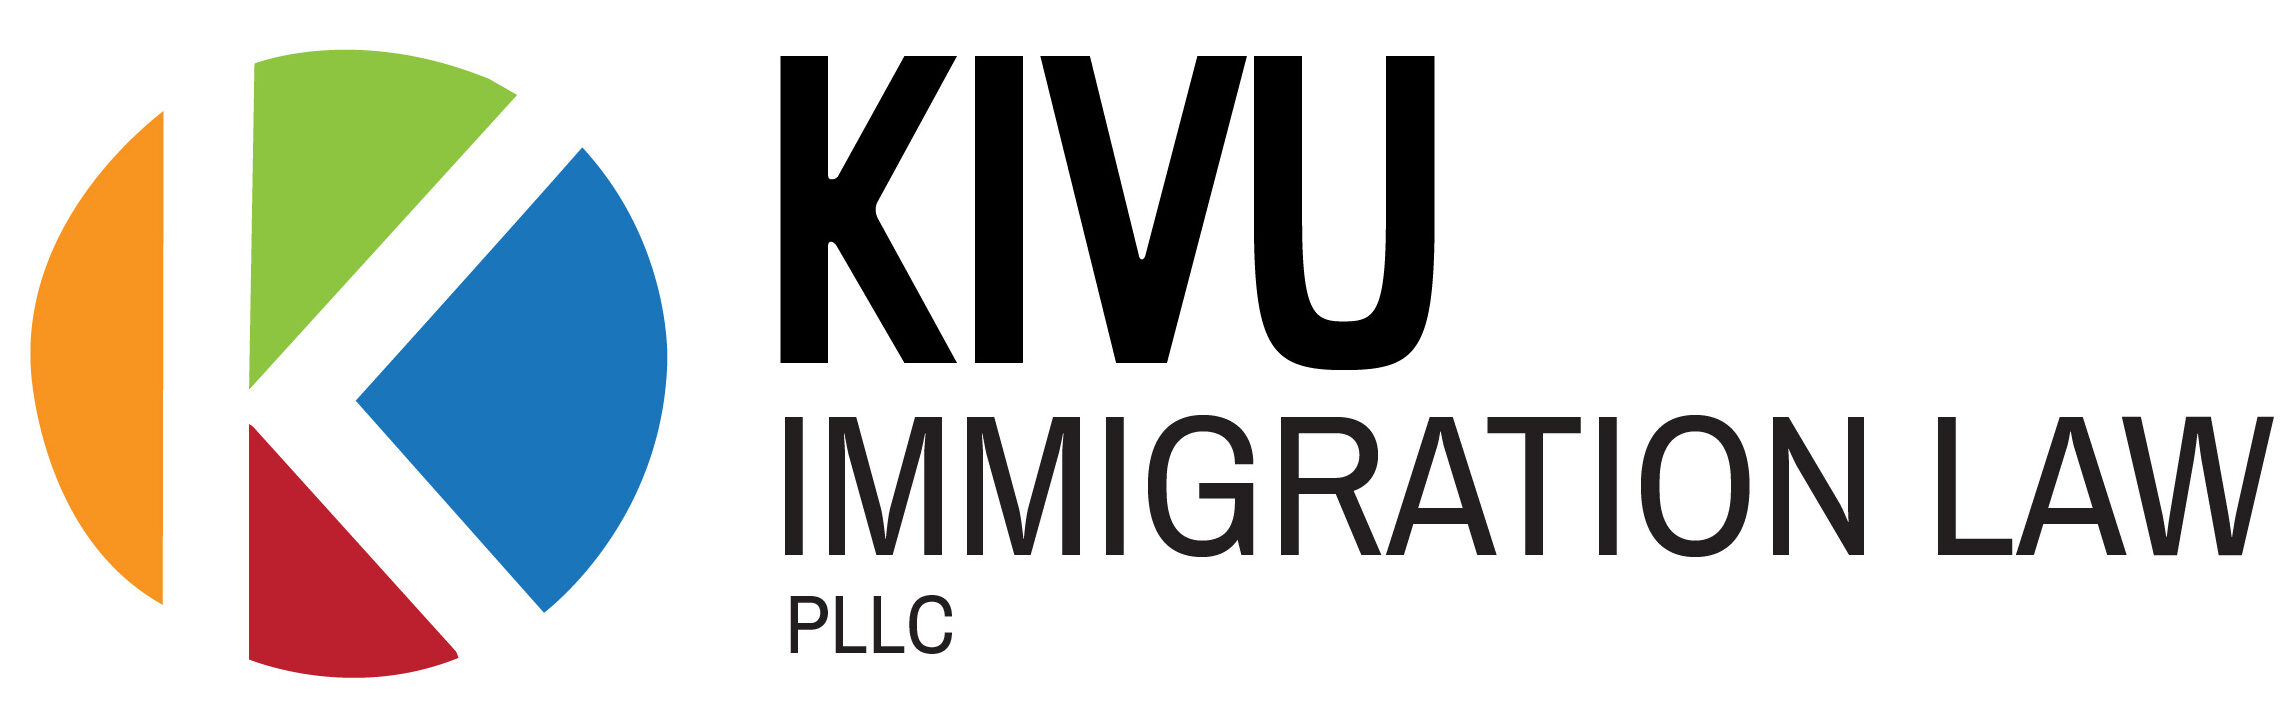 Kivu Immigration Law